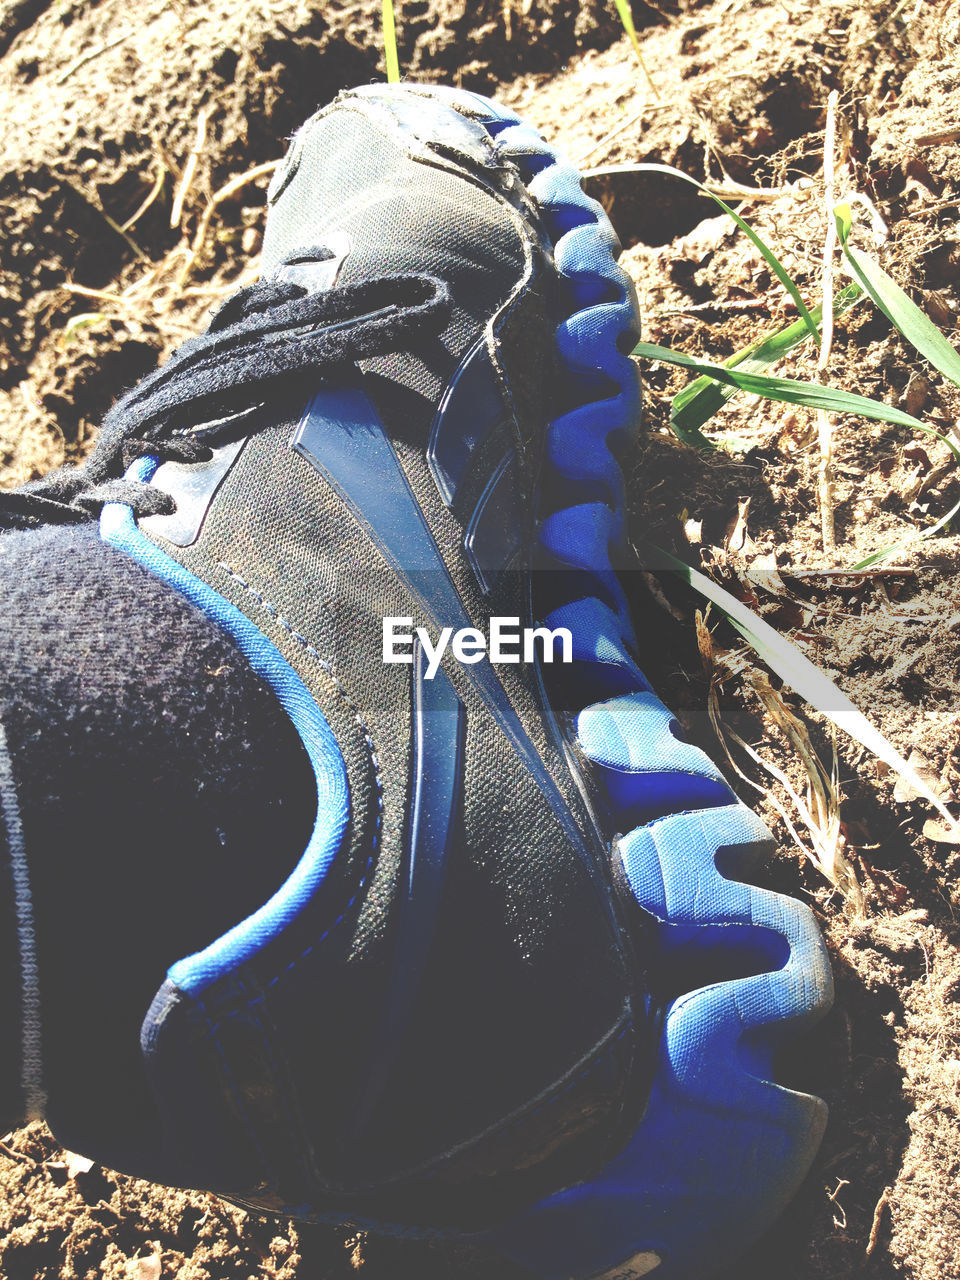 shoe, day, no people, blue, outdoors, close-up, low section, nature